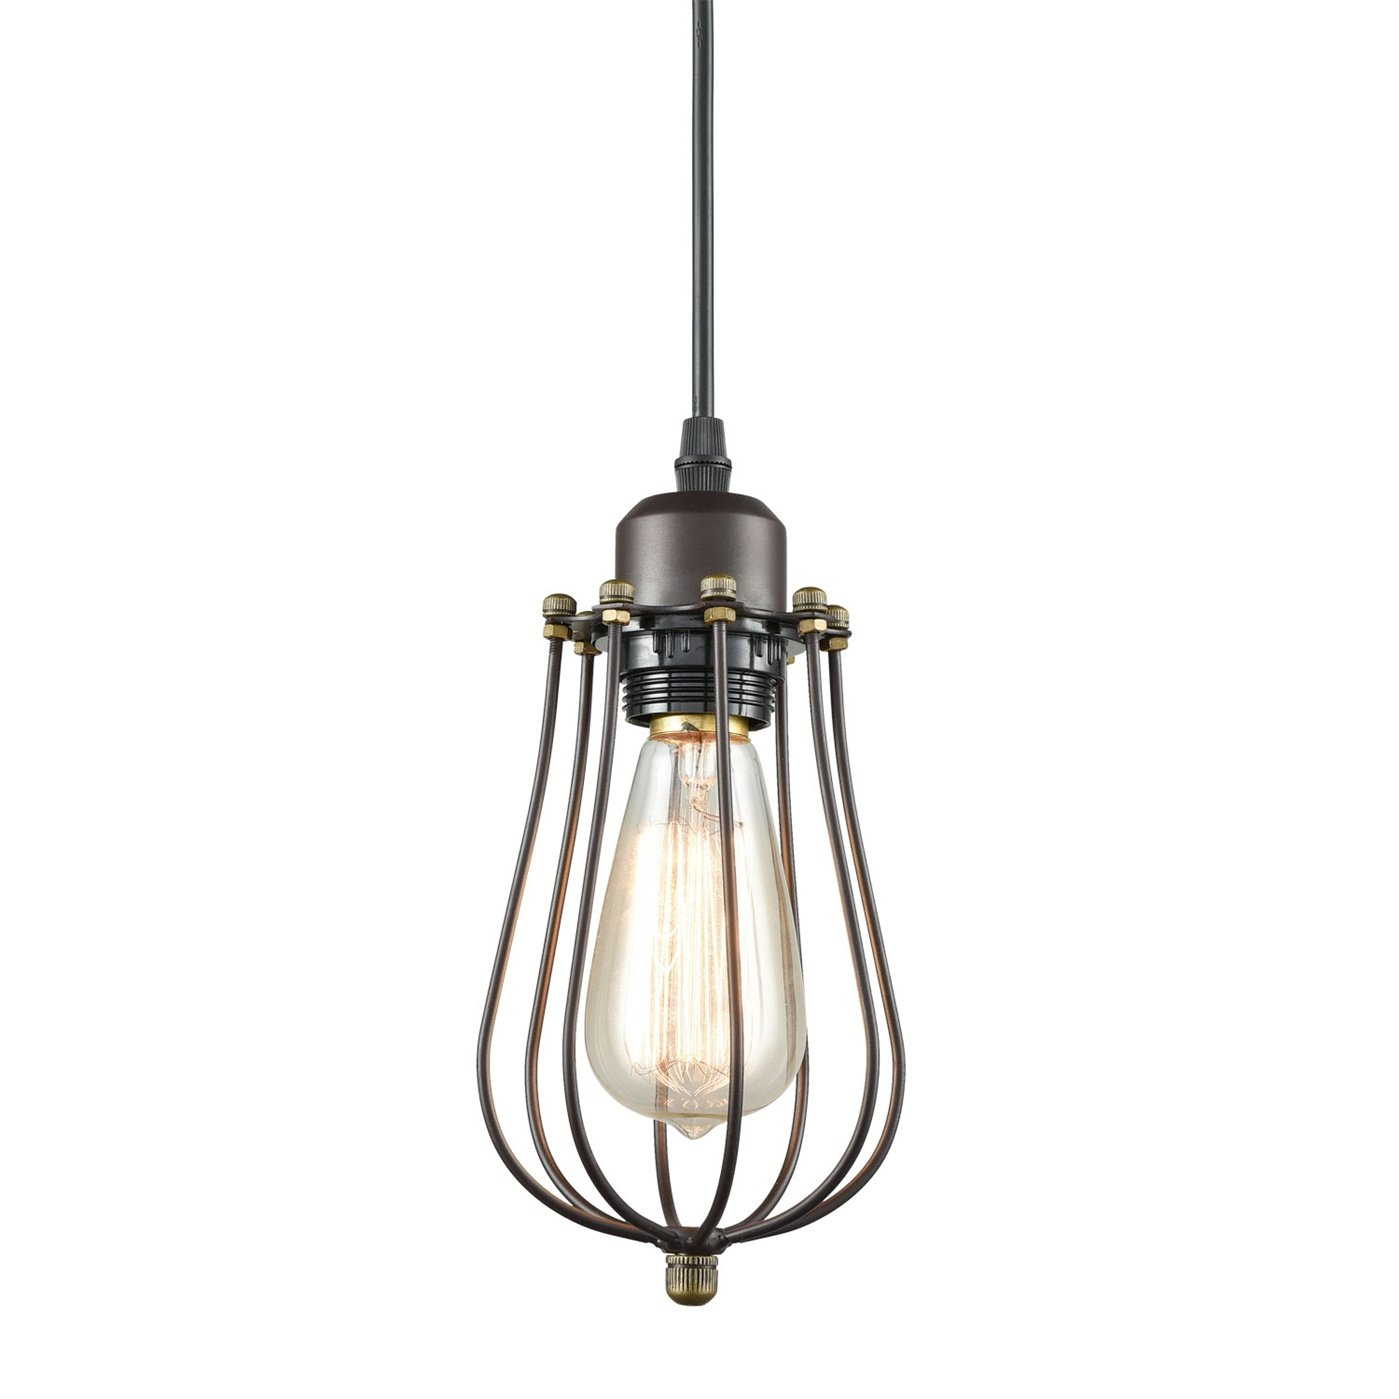 cage lighting. CLAXY Ecopower Vintage Style Industrial Oil Rubbed Bronze Hanging Light Mini Pendant Wire Cage Lamp - Amazon.com Lighting